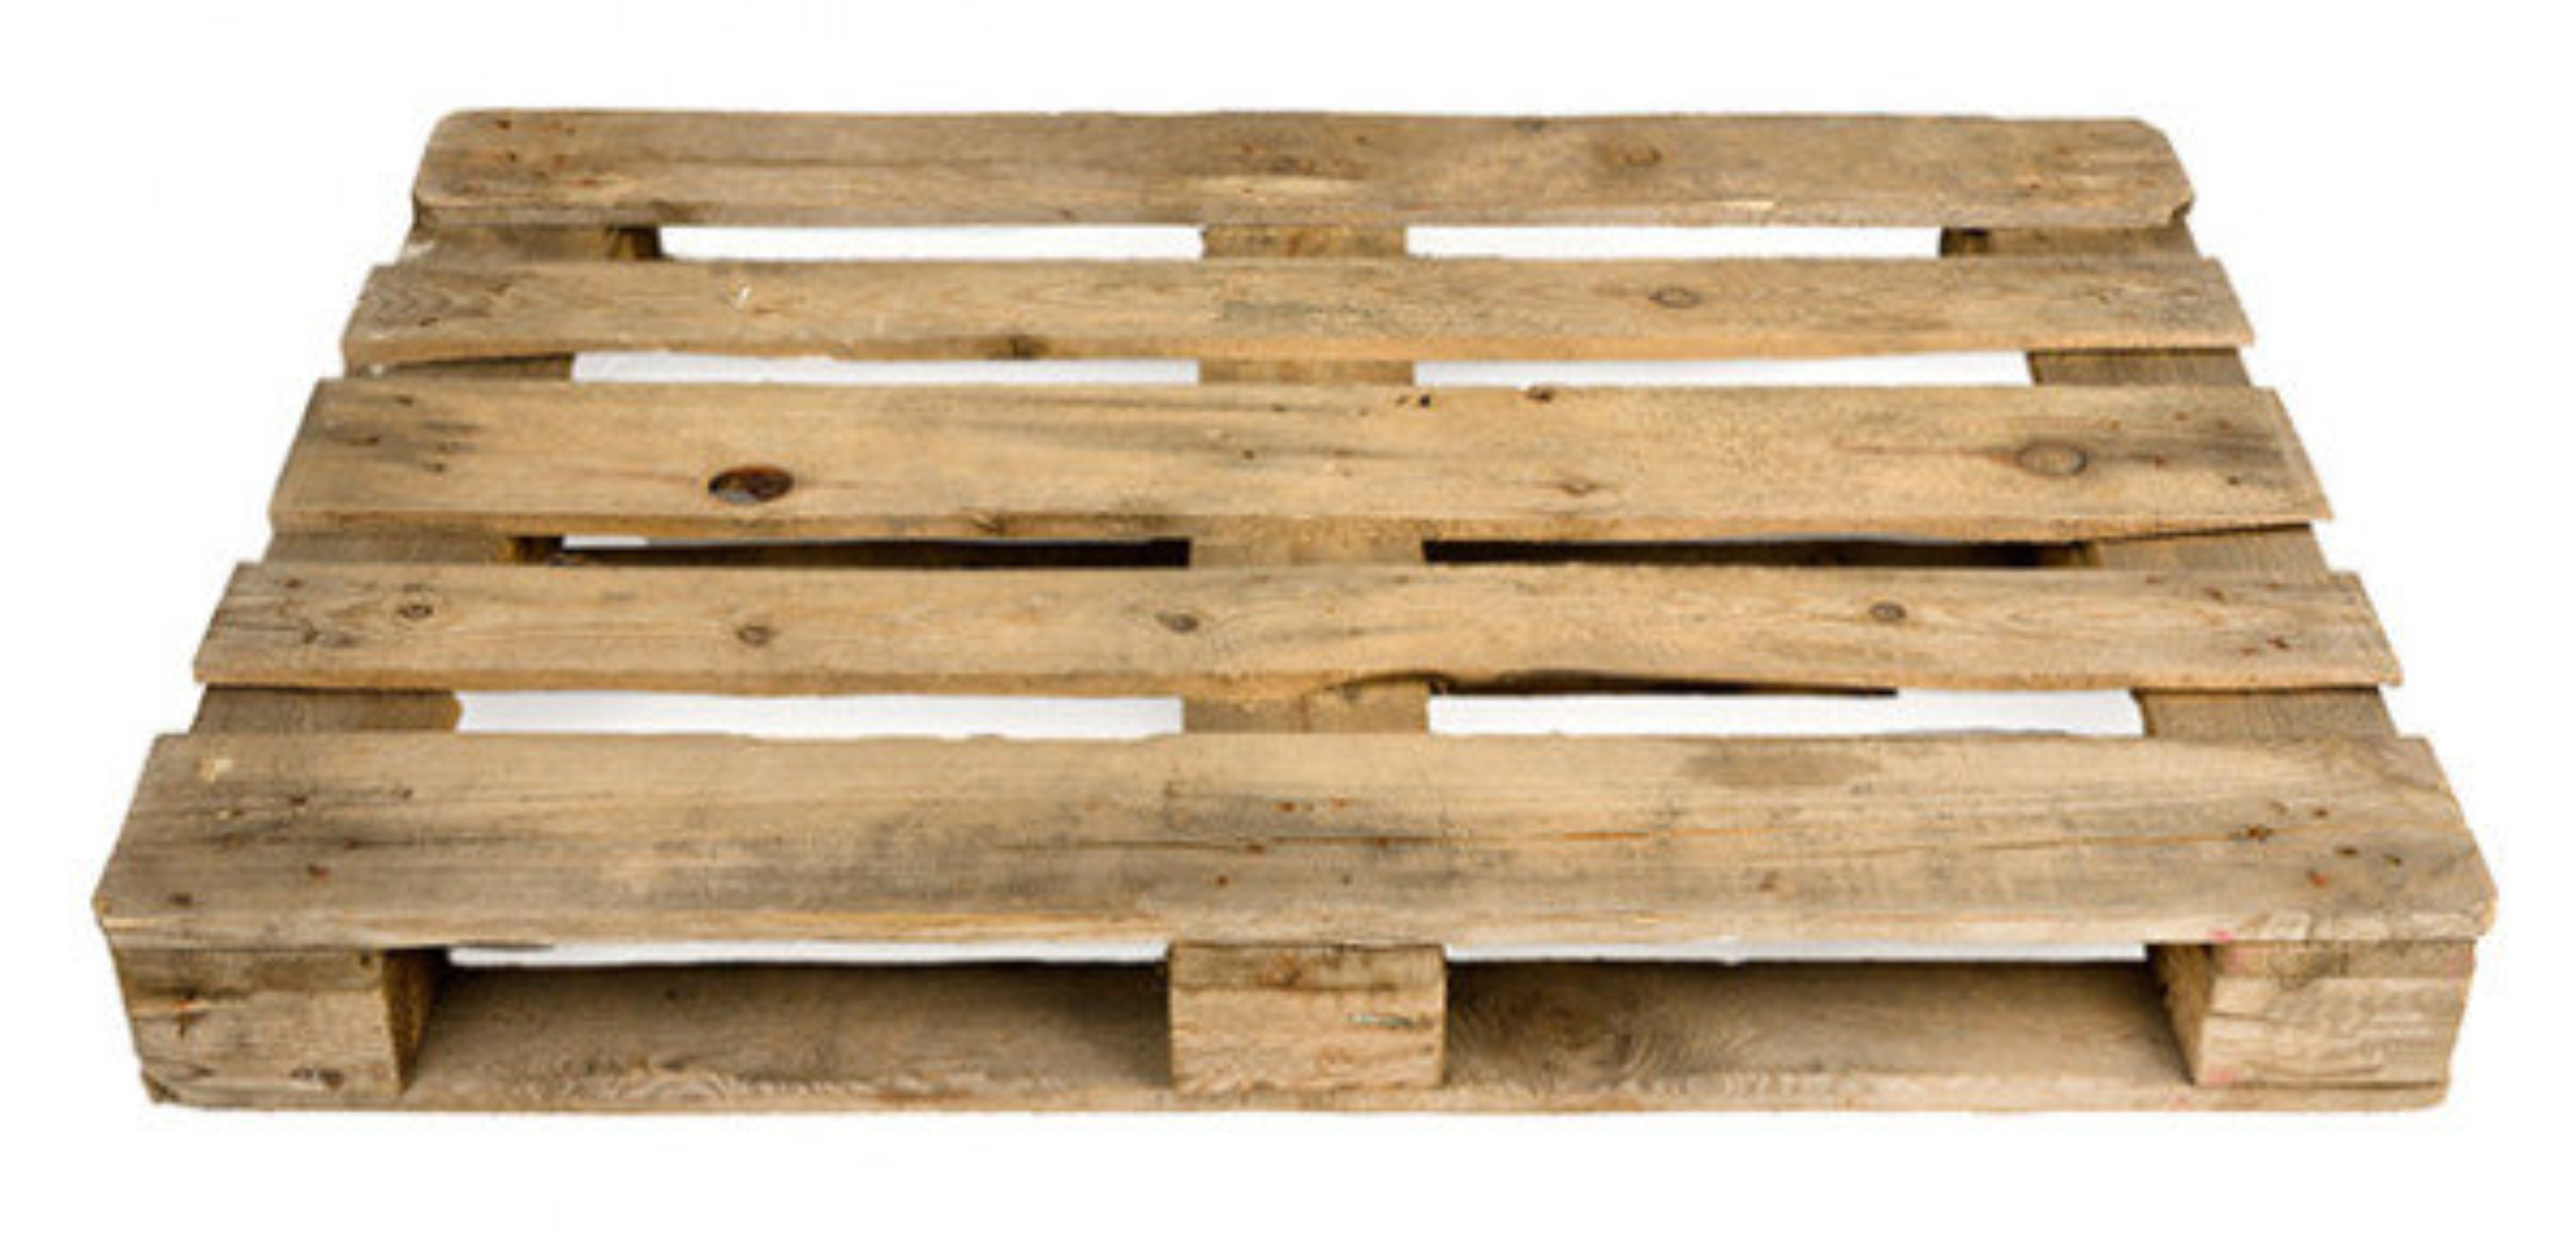 Pallets Not All Pallets Can Be Safely Stored On Pallet Racking Barpro